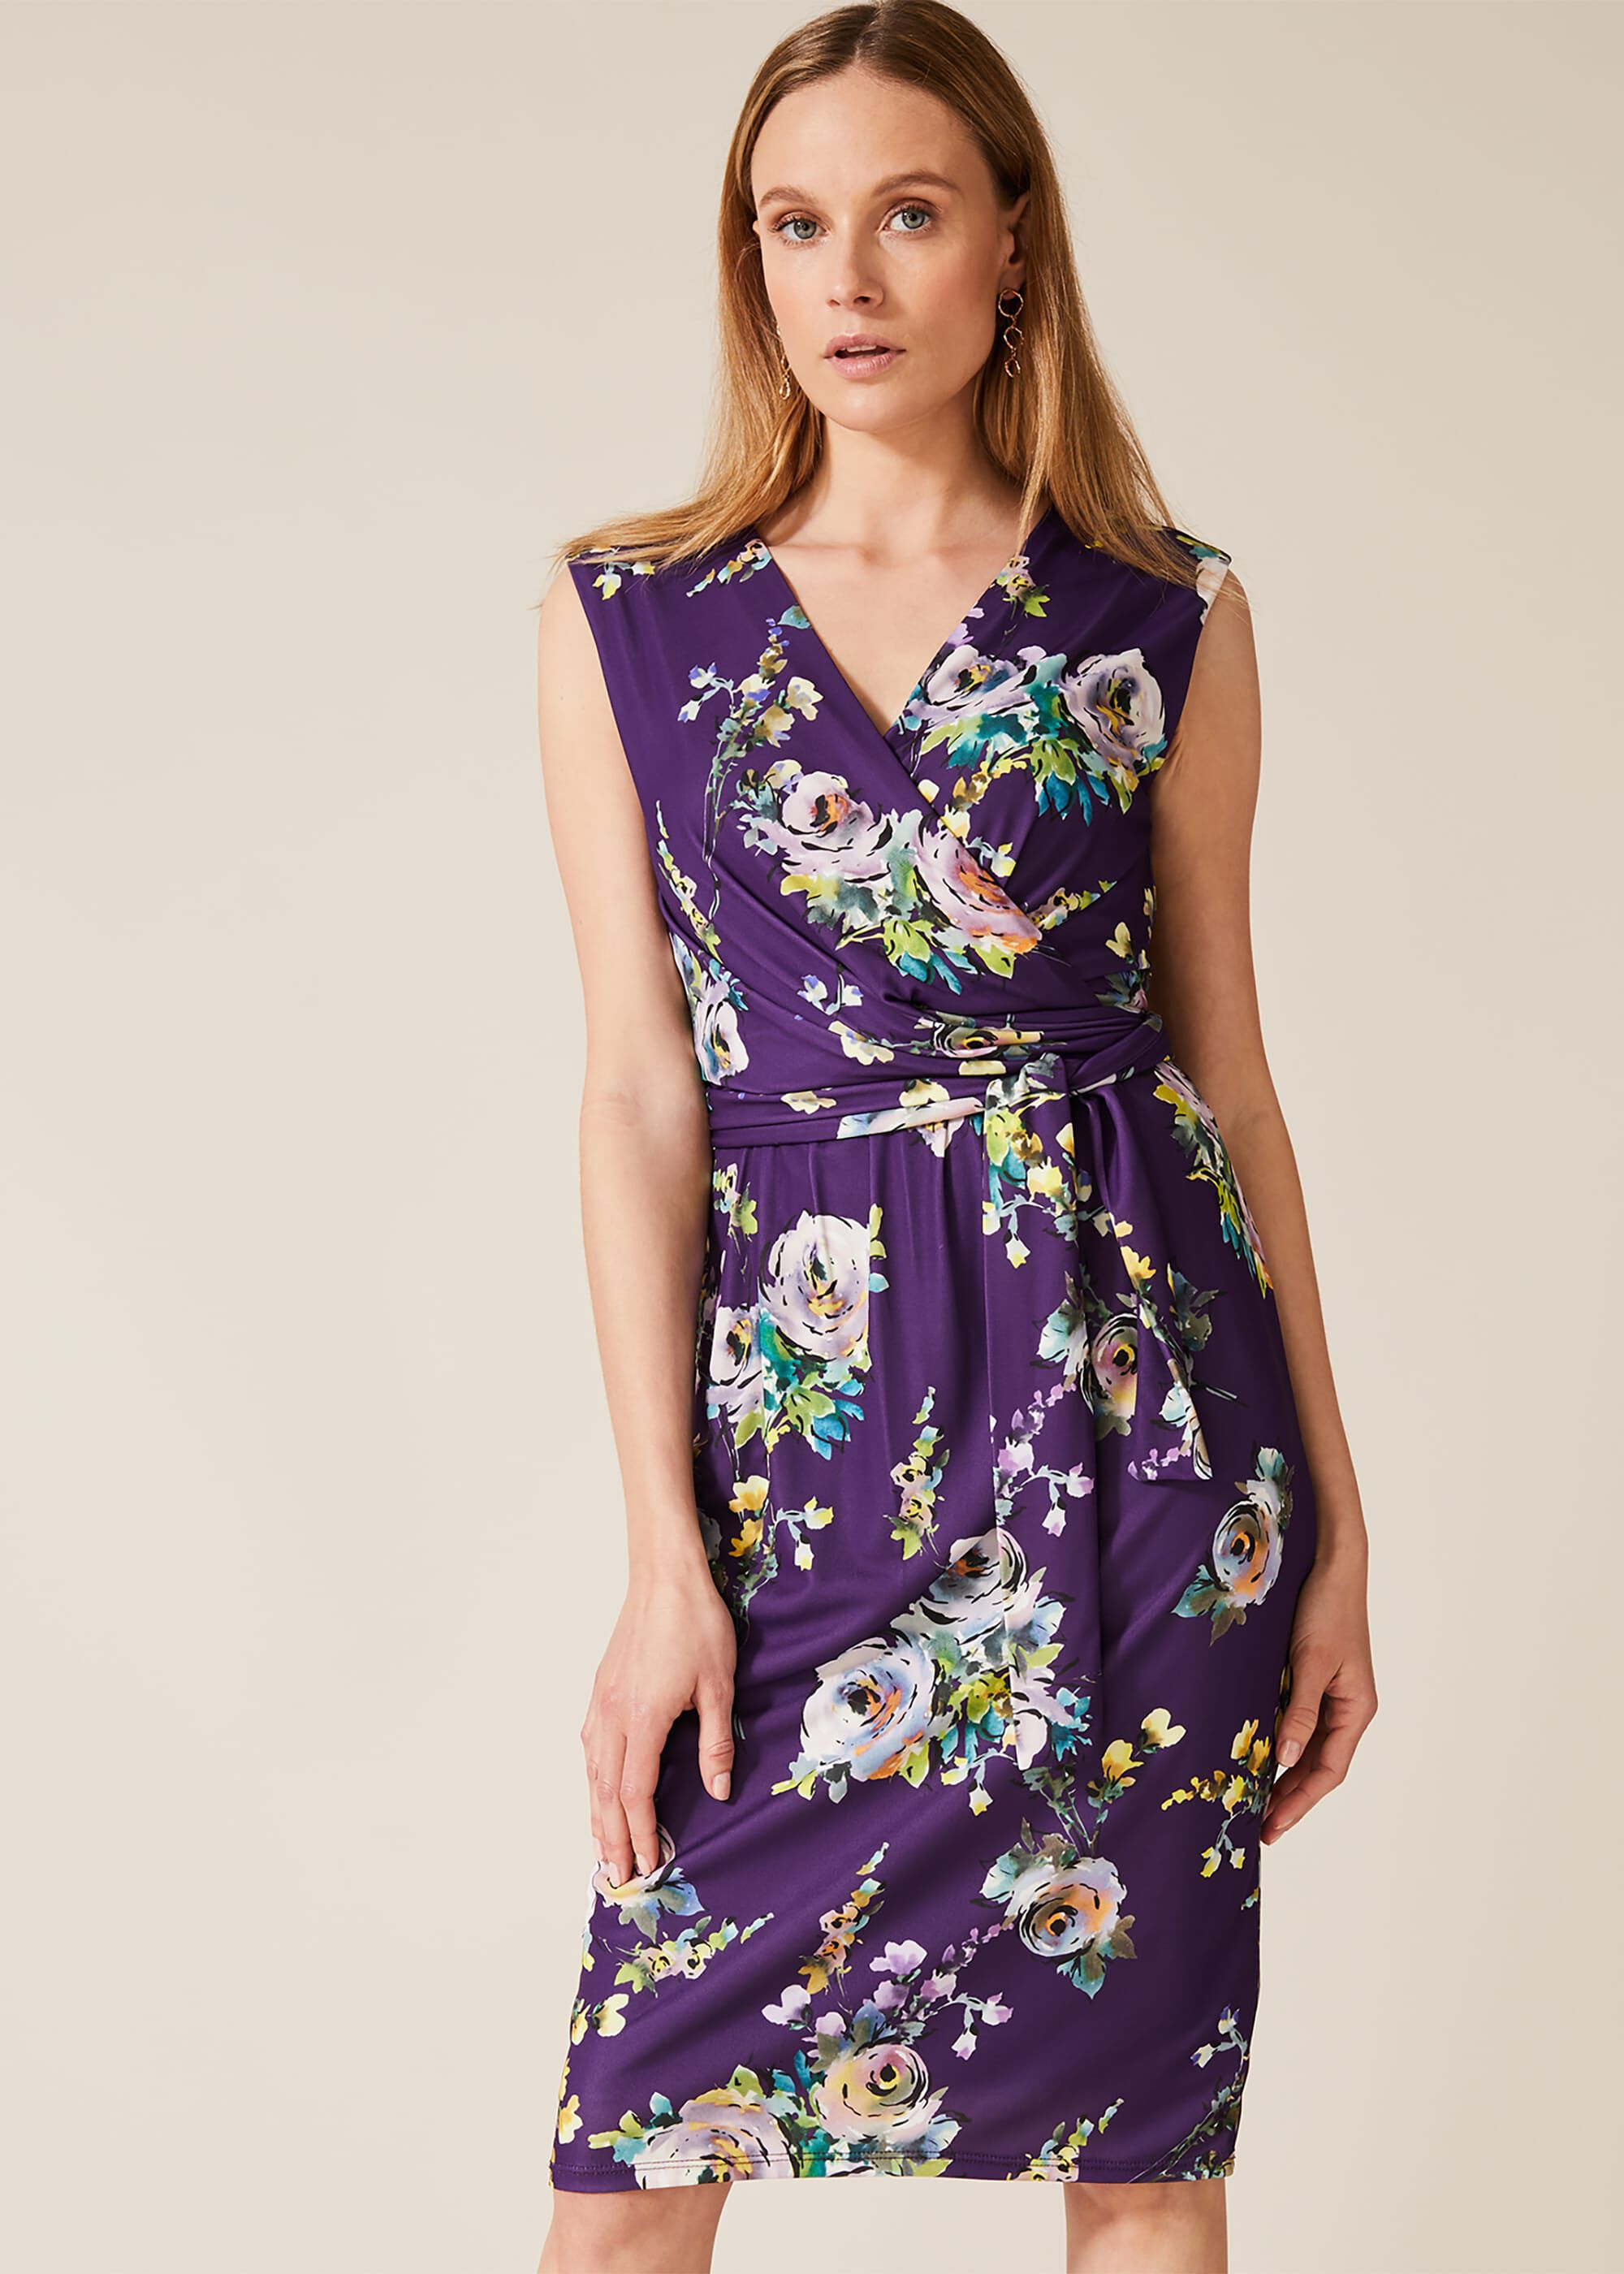 Phase Eight Franchesca Floral Print Dress, Purple, Floral, Occasion Dress